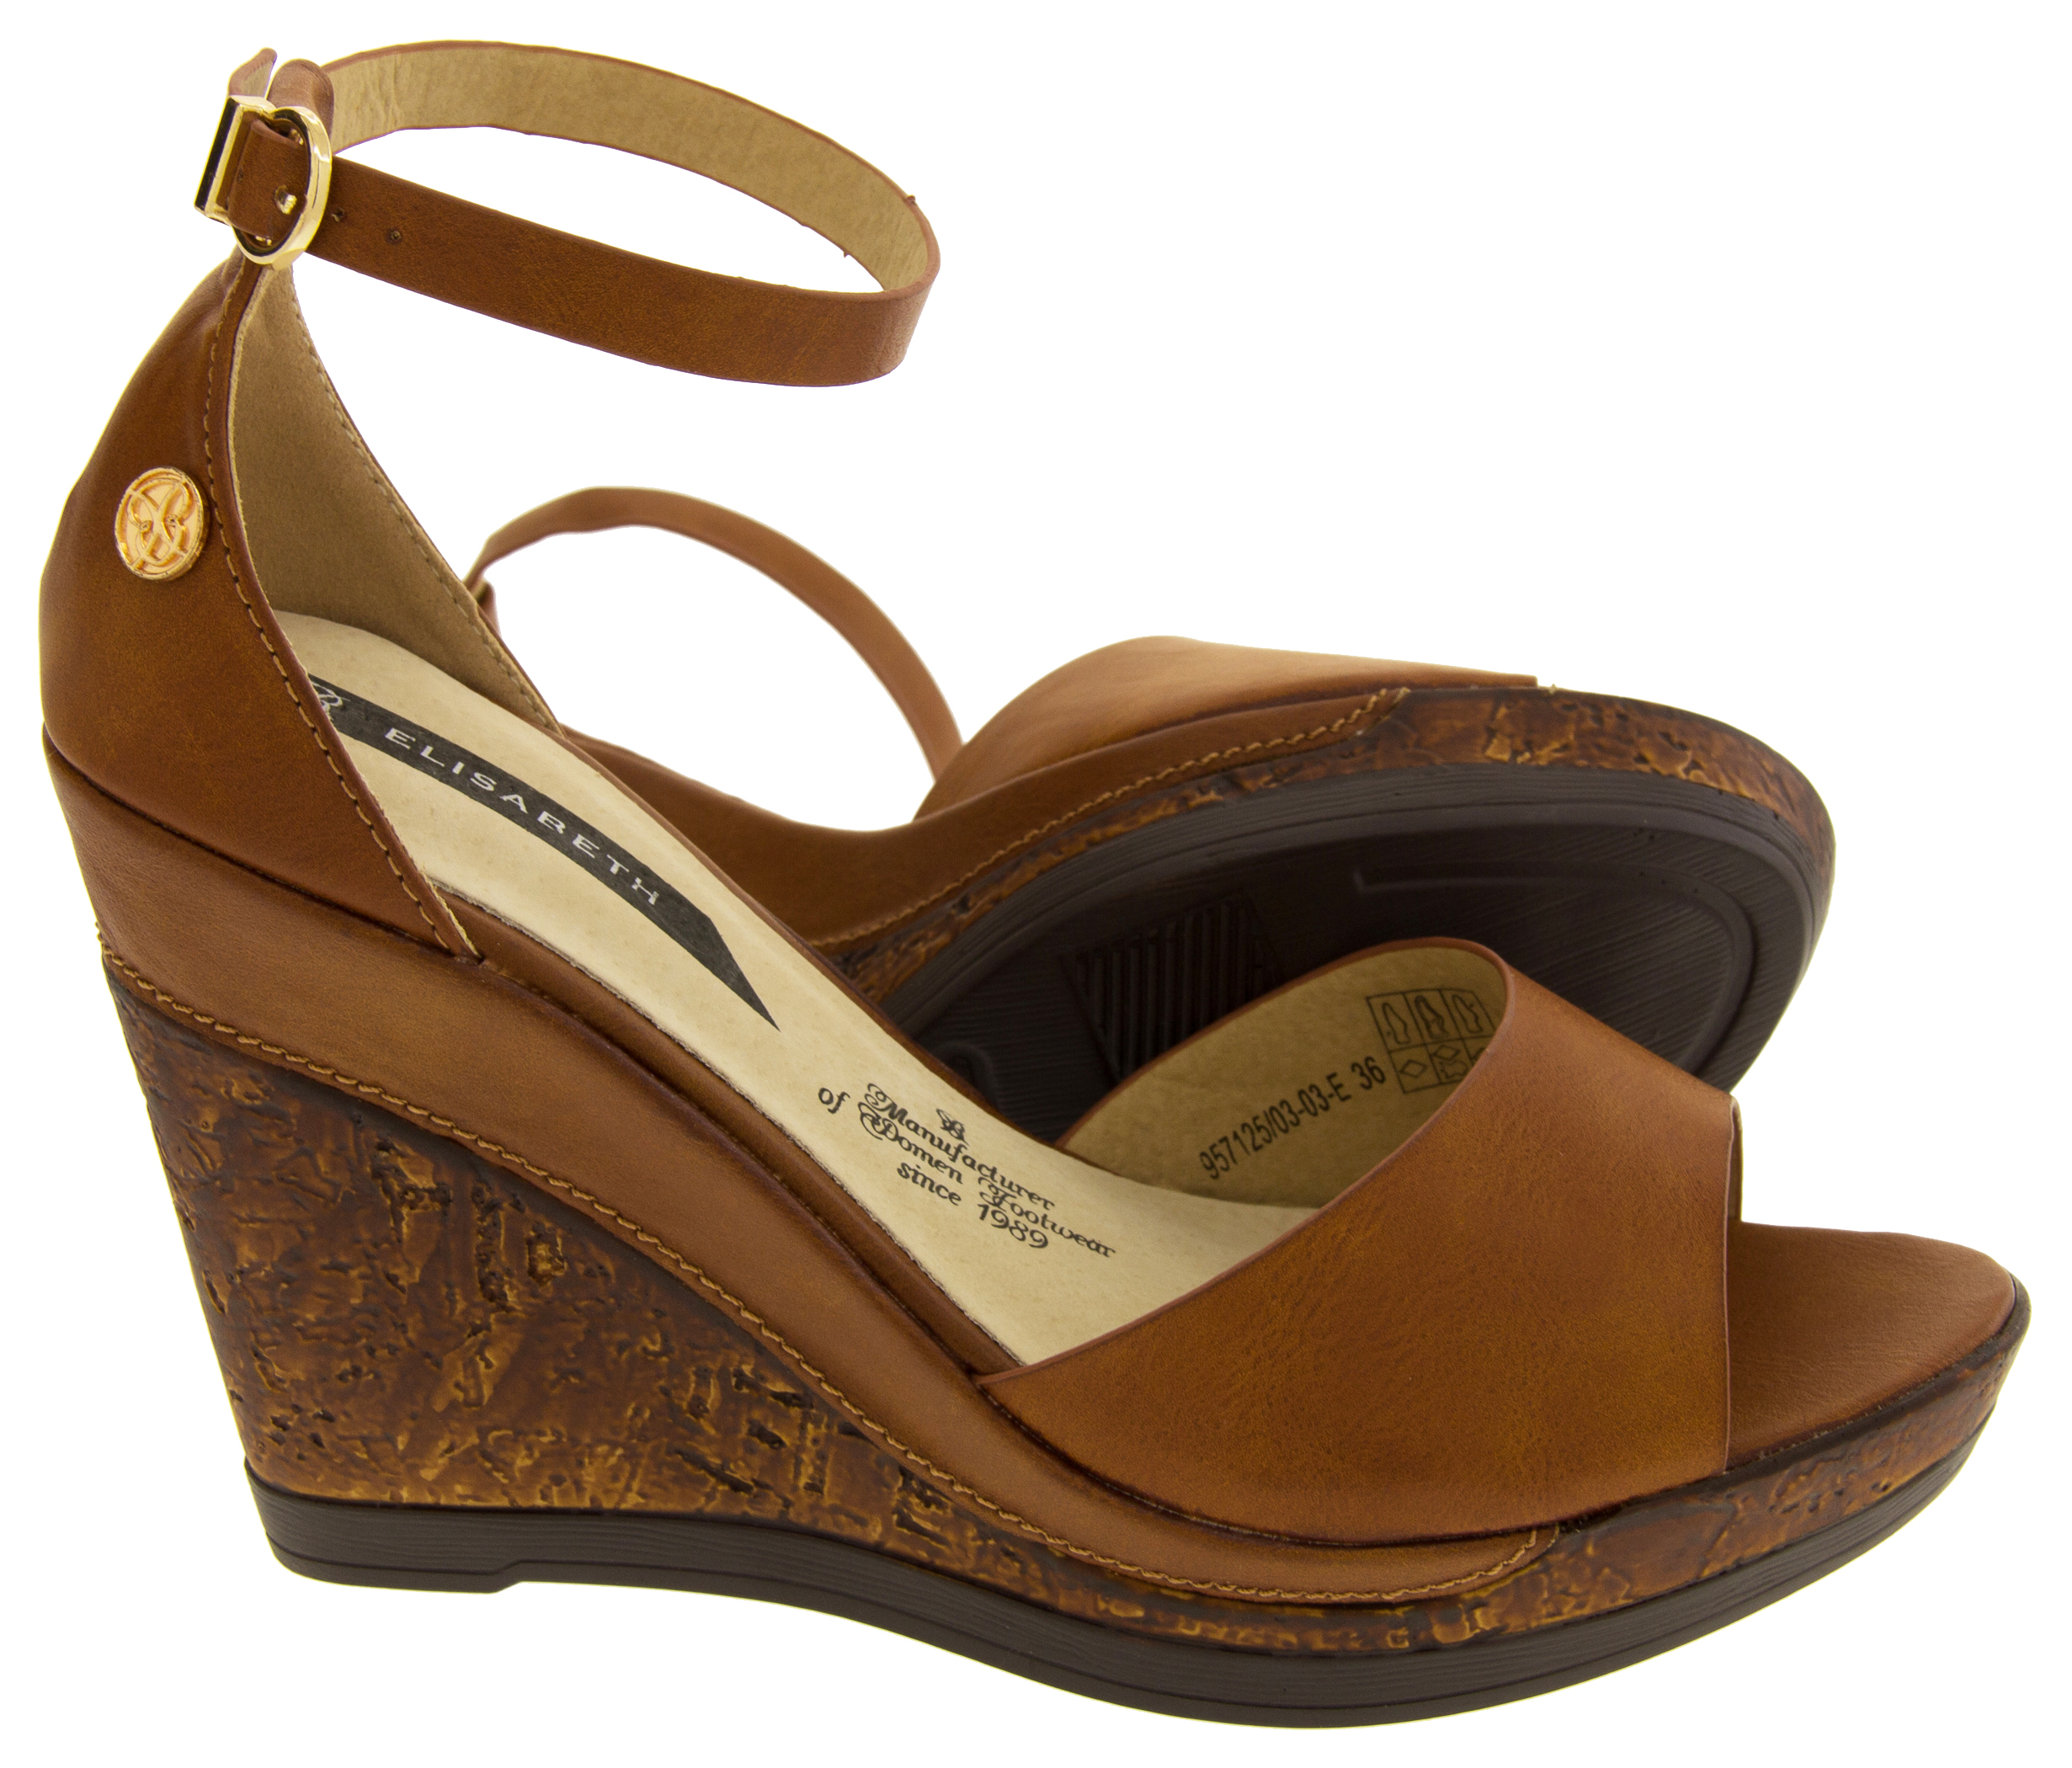 Find great deals on eBay for womens size 5 wedge shoes. Shop with confidence.